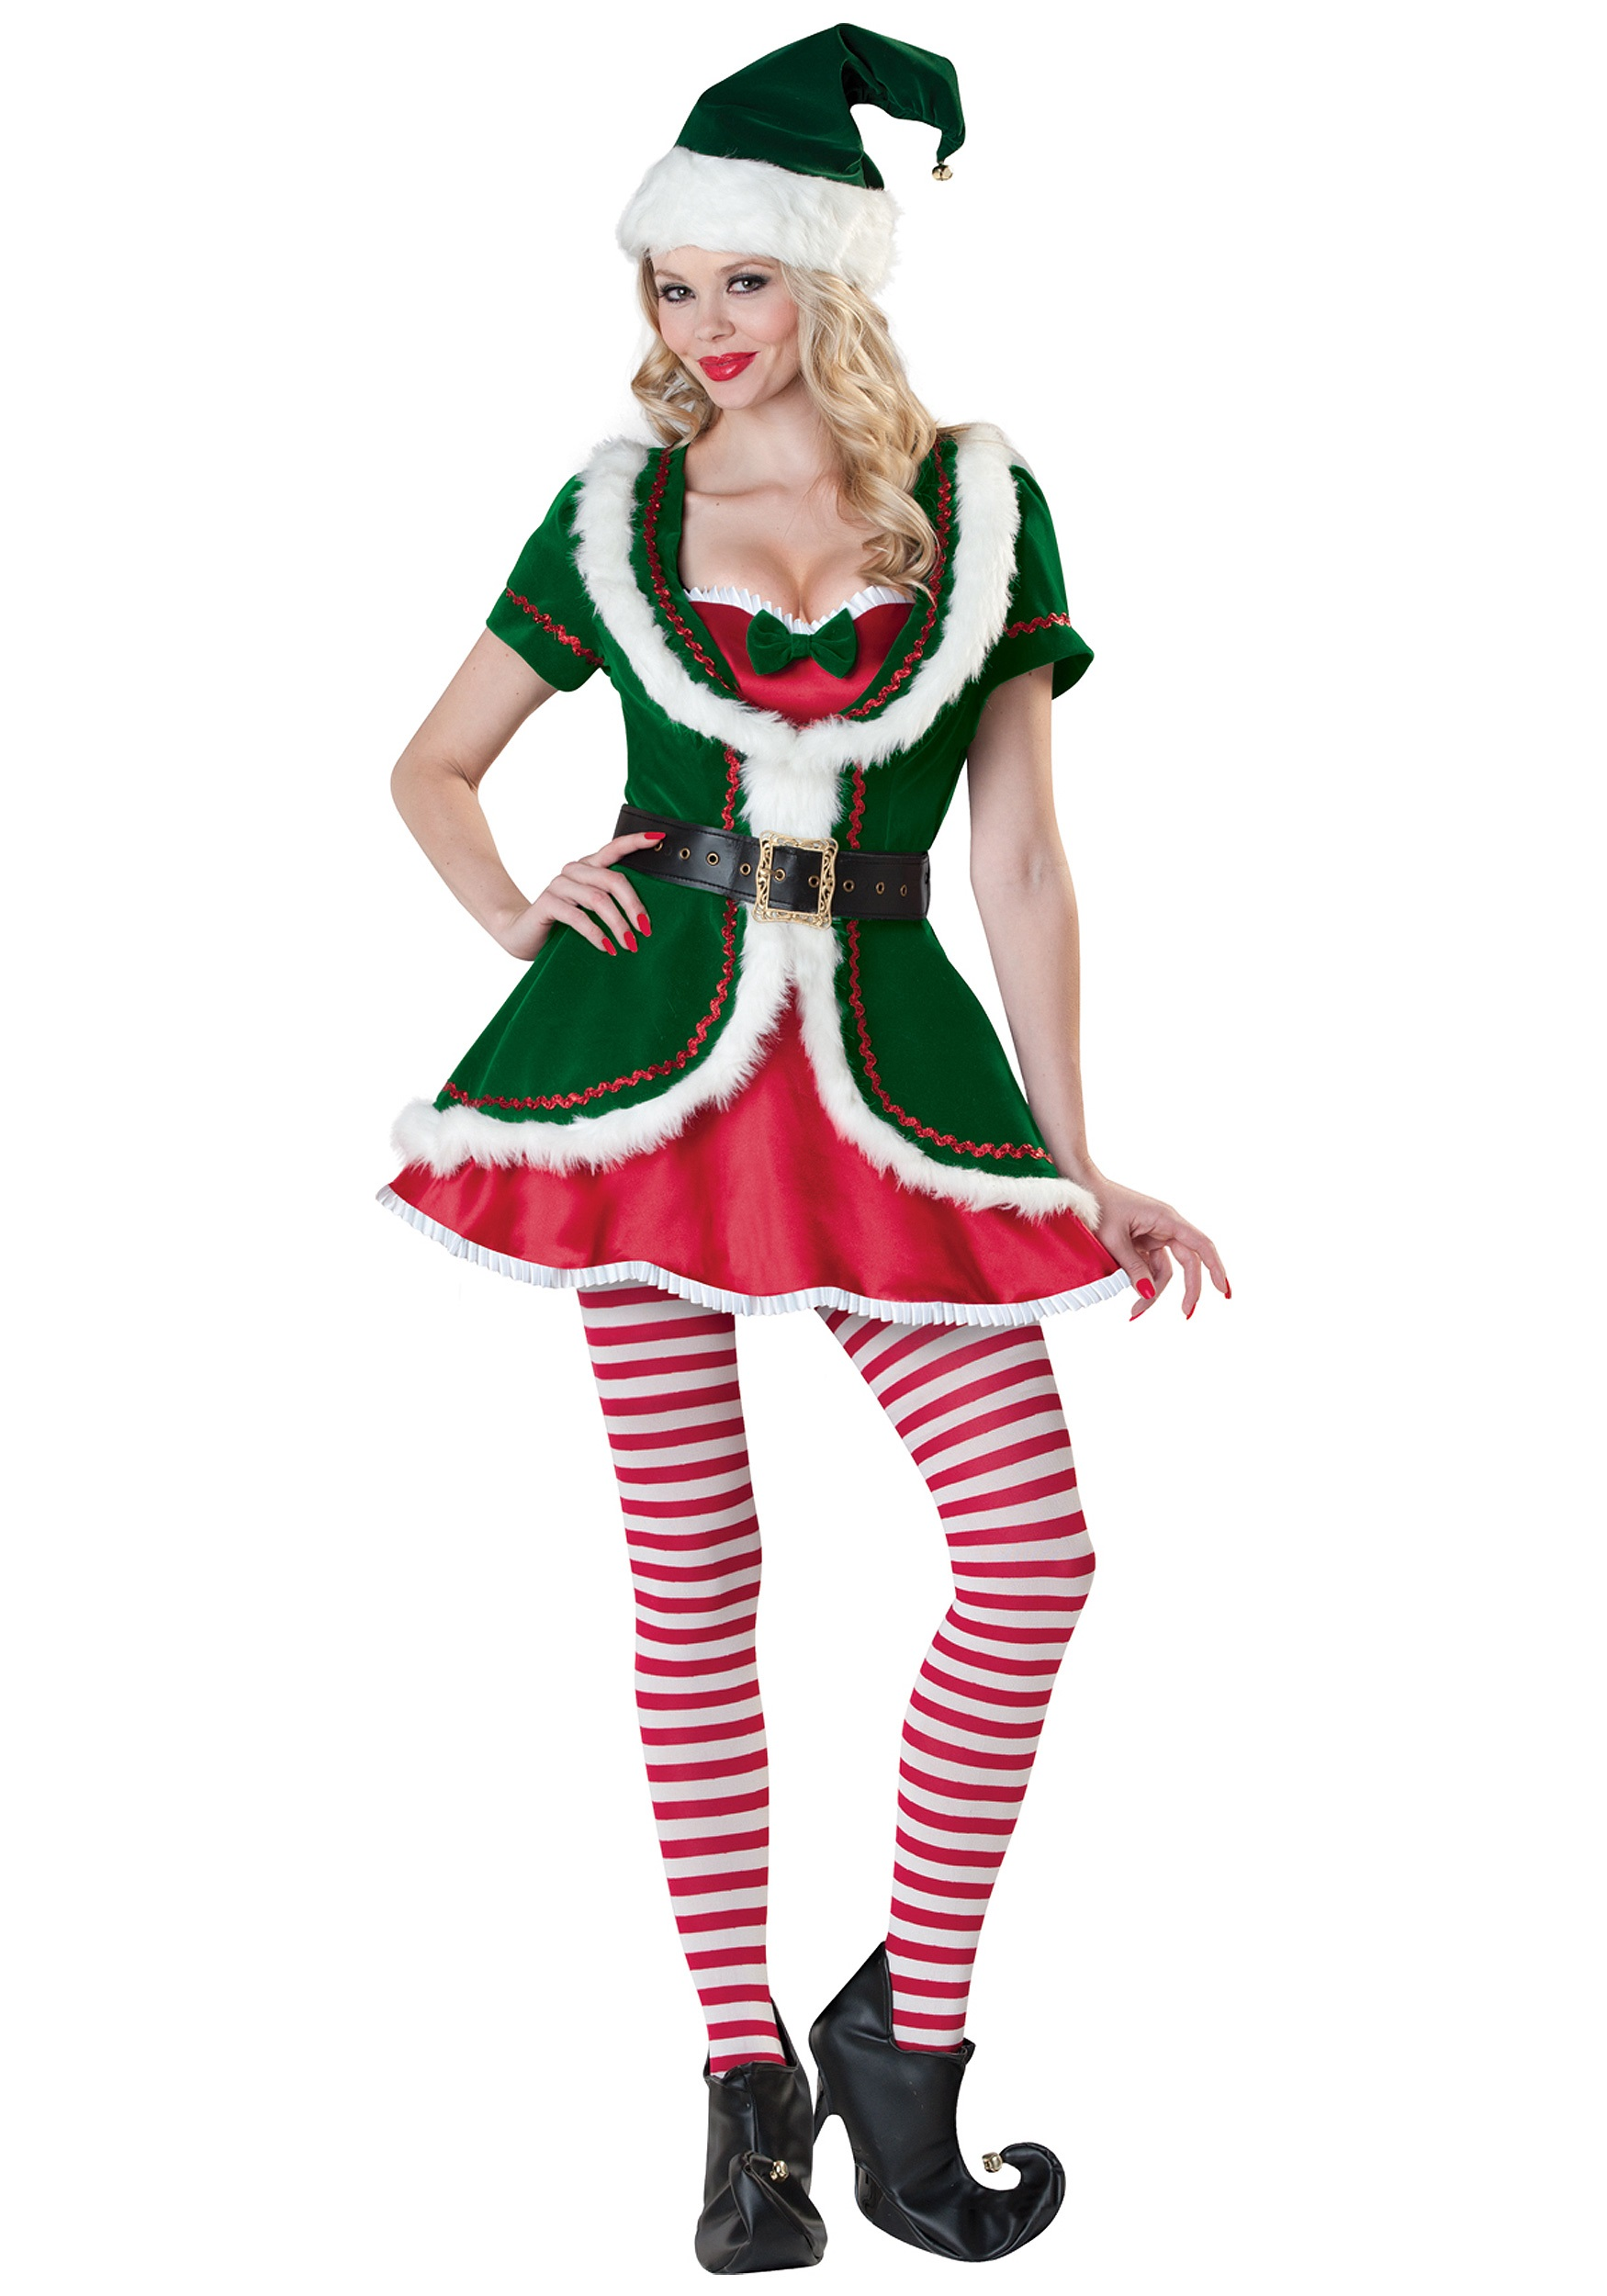 Sexy Holiday Honey Elf Costume - Sexy Elf Costume Ideas